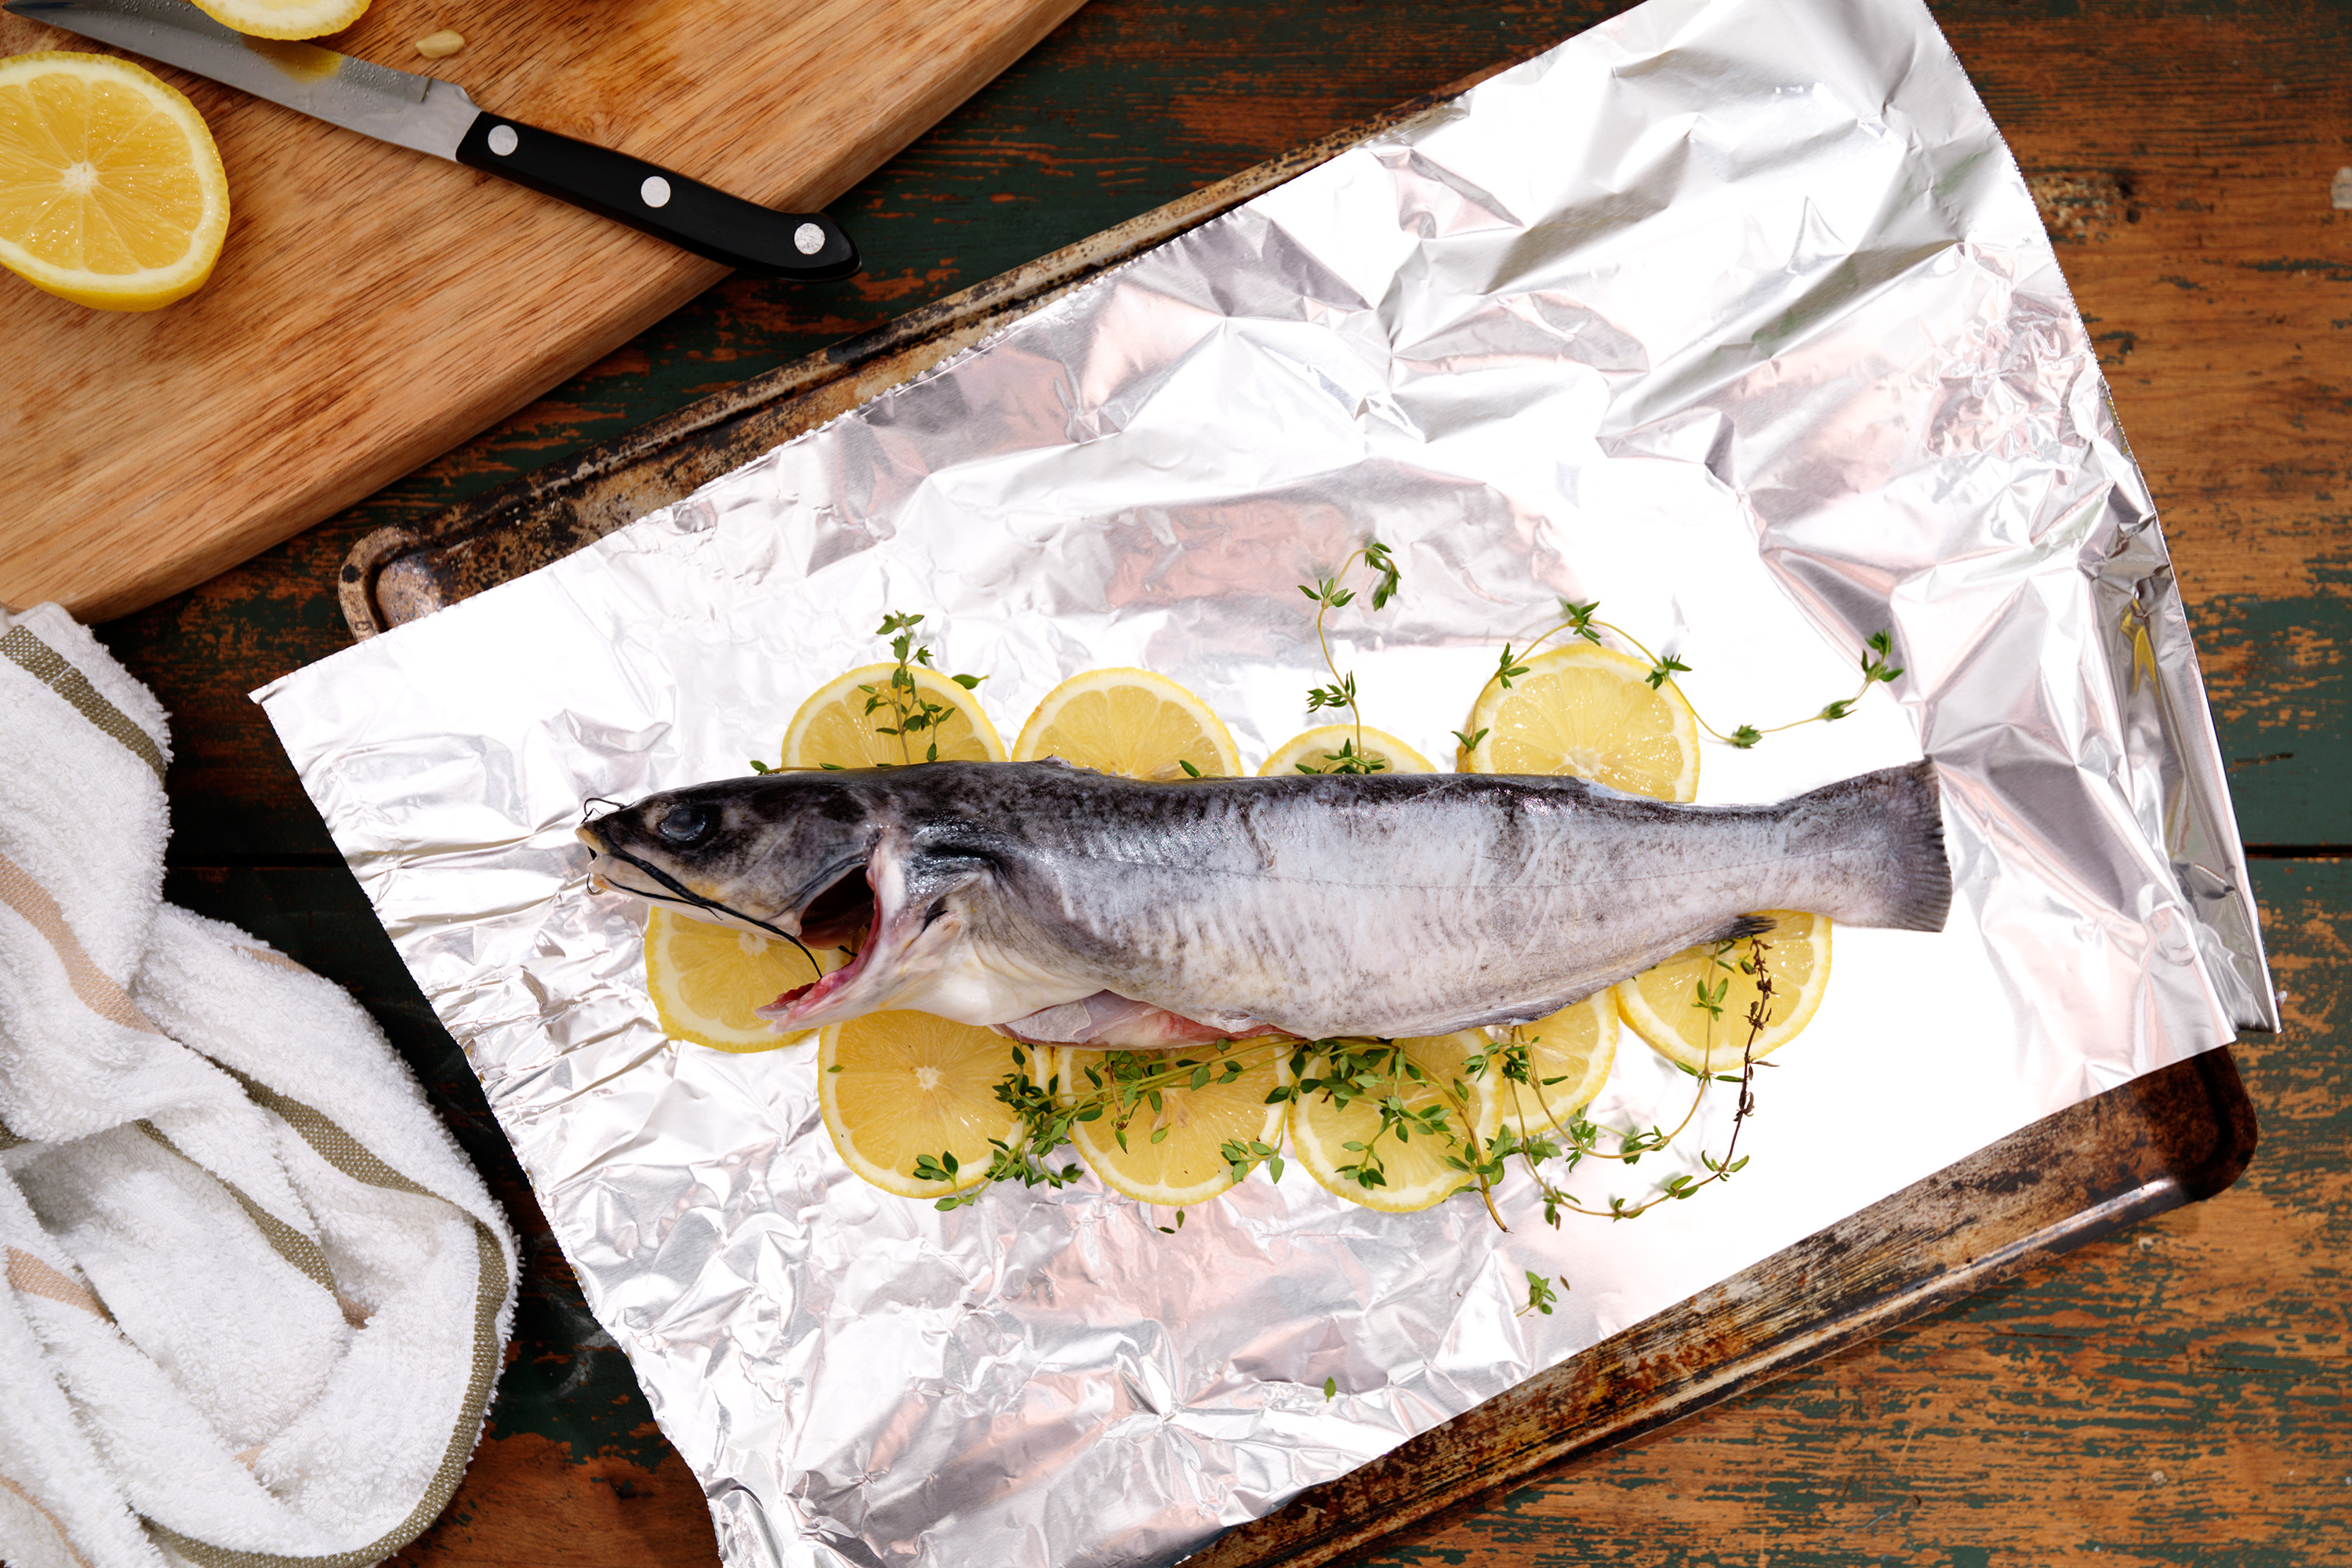 How to cook whole catfish in the oven livestrong com for How to cook whole fish in the oven